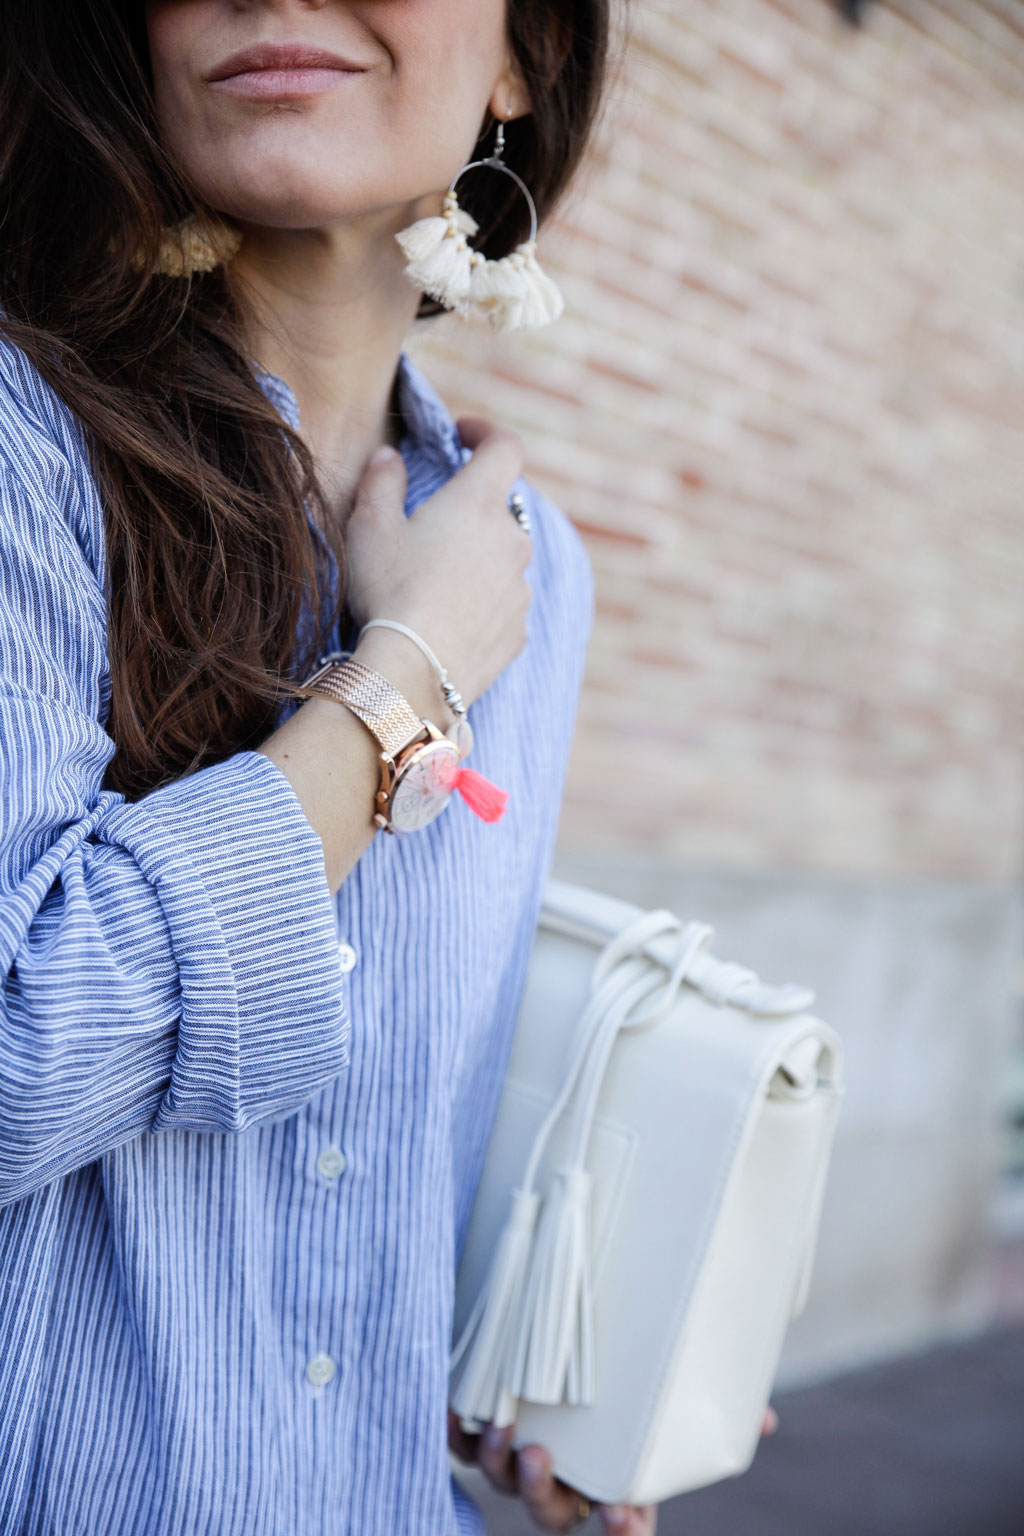 08_camisa_de_rayas_azules_para_primavera_estilo_sincerely_jules_theguestgirl_influencer_barcelona_the_guest_girl_laura_santolaria_fashion_blogger_content_creator_perpex_shoes